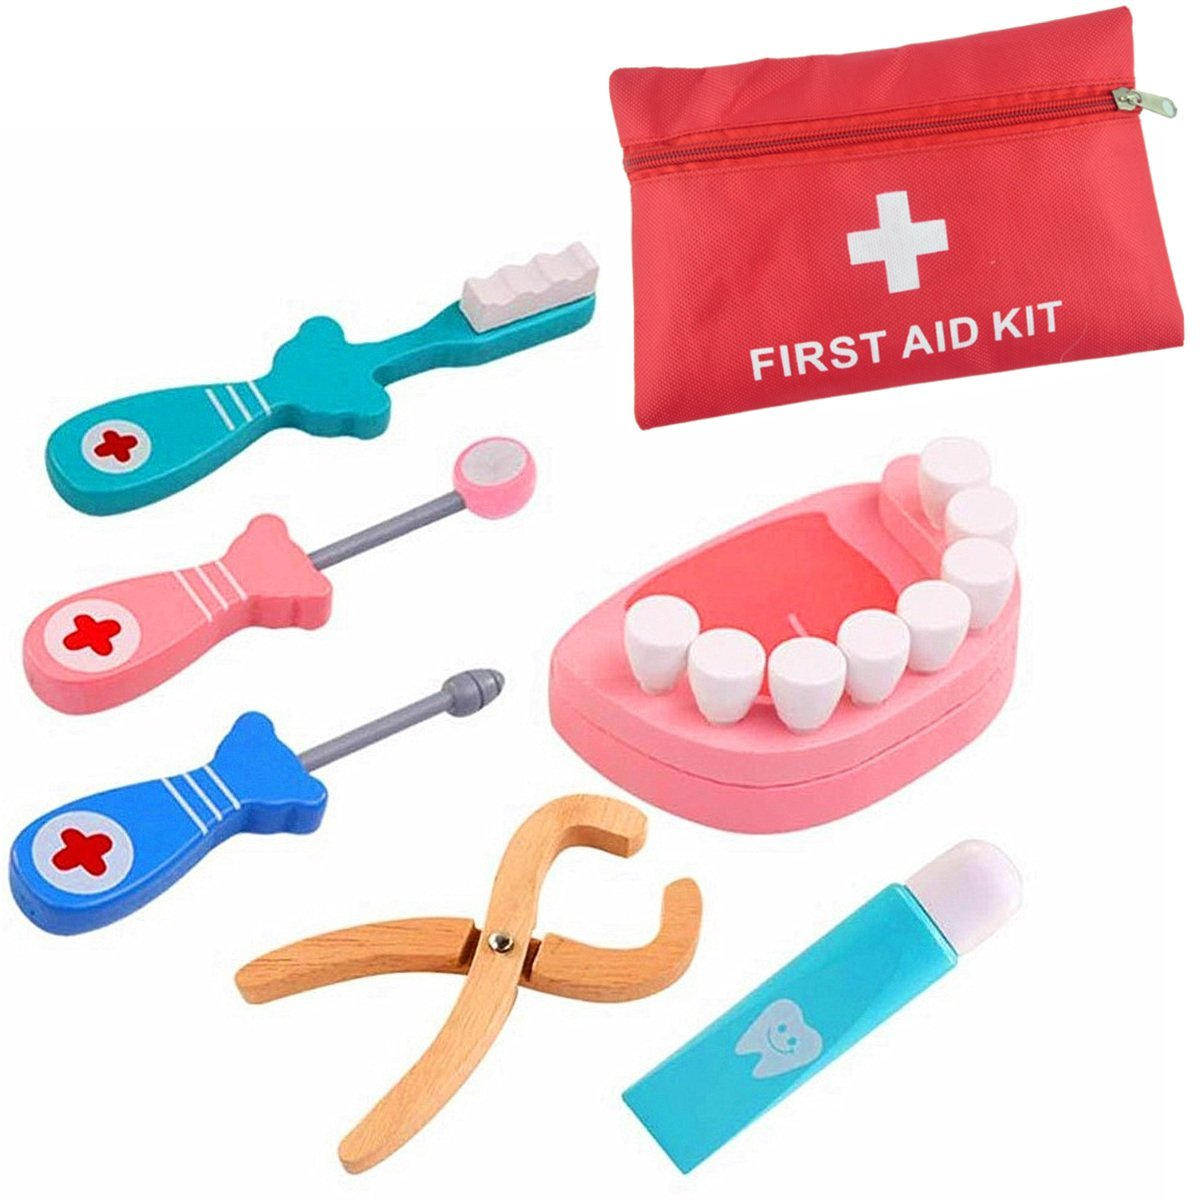 Minibaby Pretend Play Medical Kit Funny Dentist Realistic Doctor Toy Set for Kids Include 6 Pieces Wooden Teeth Toys